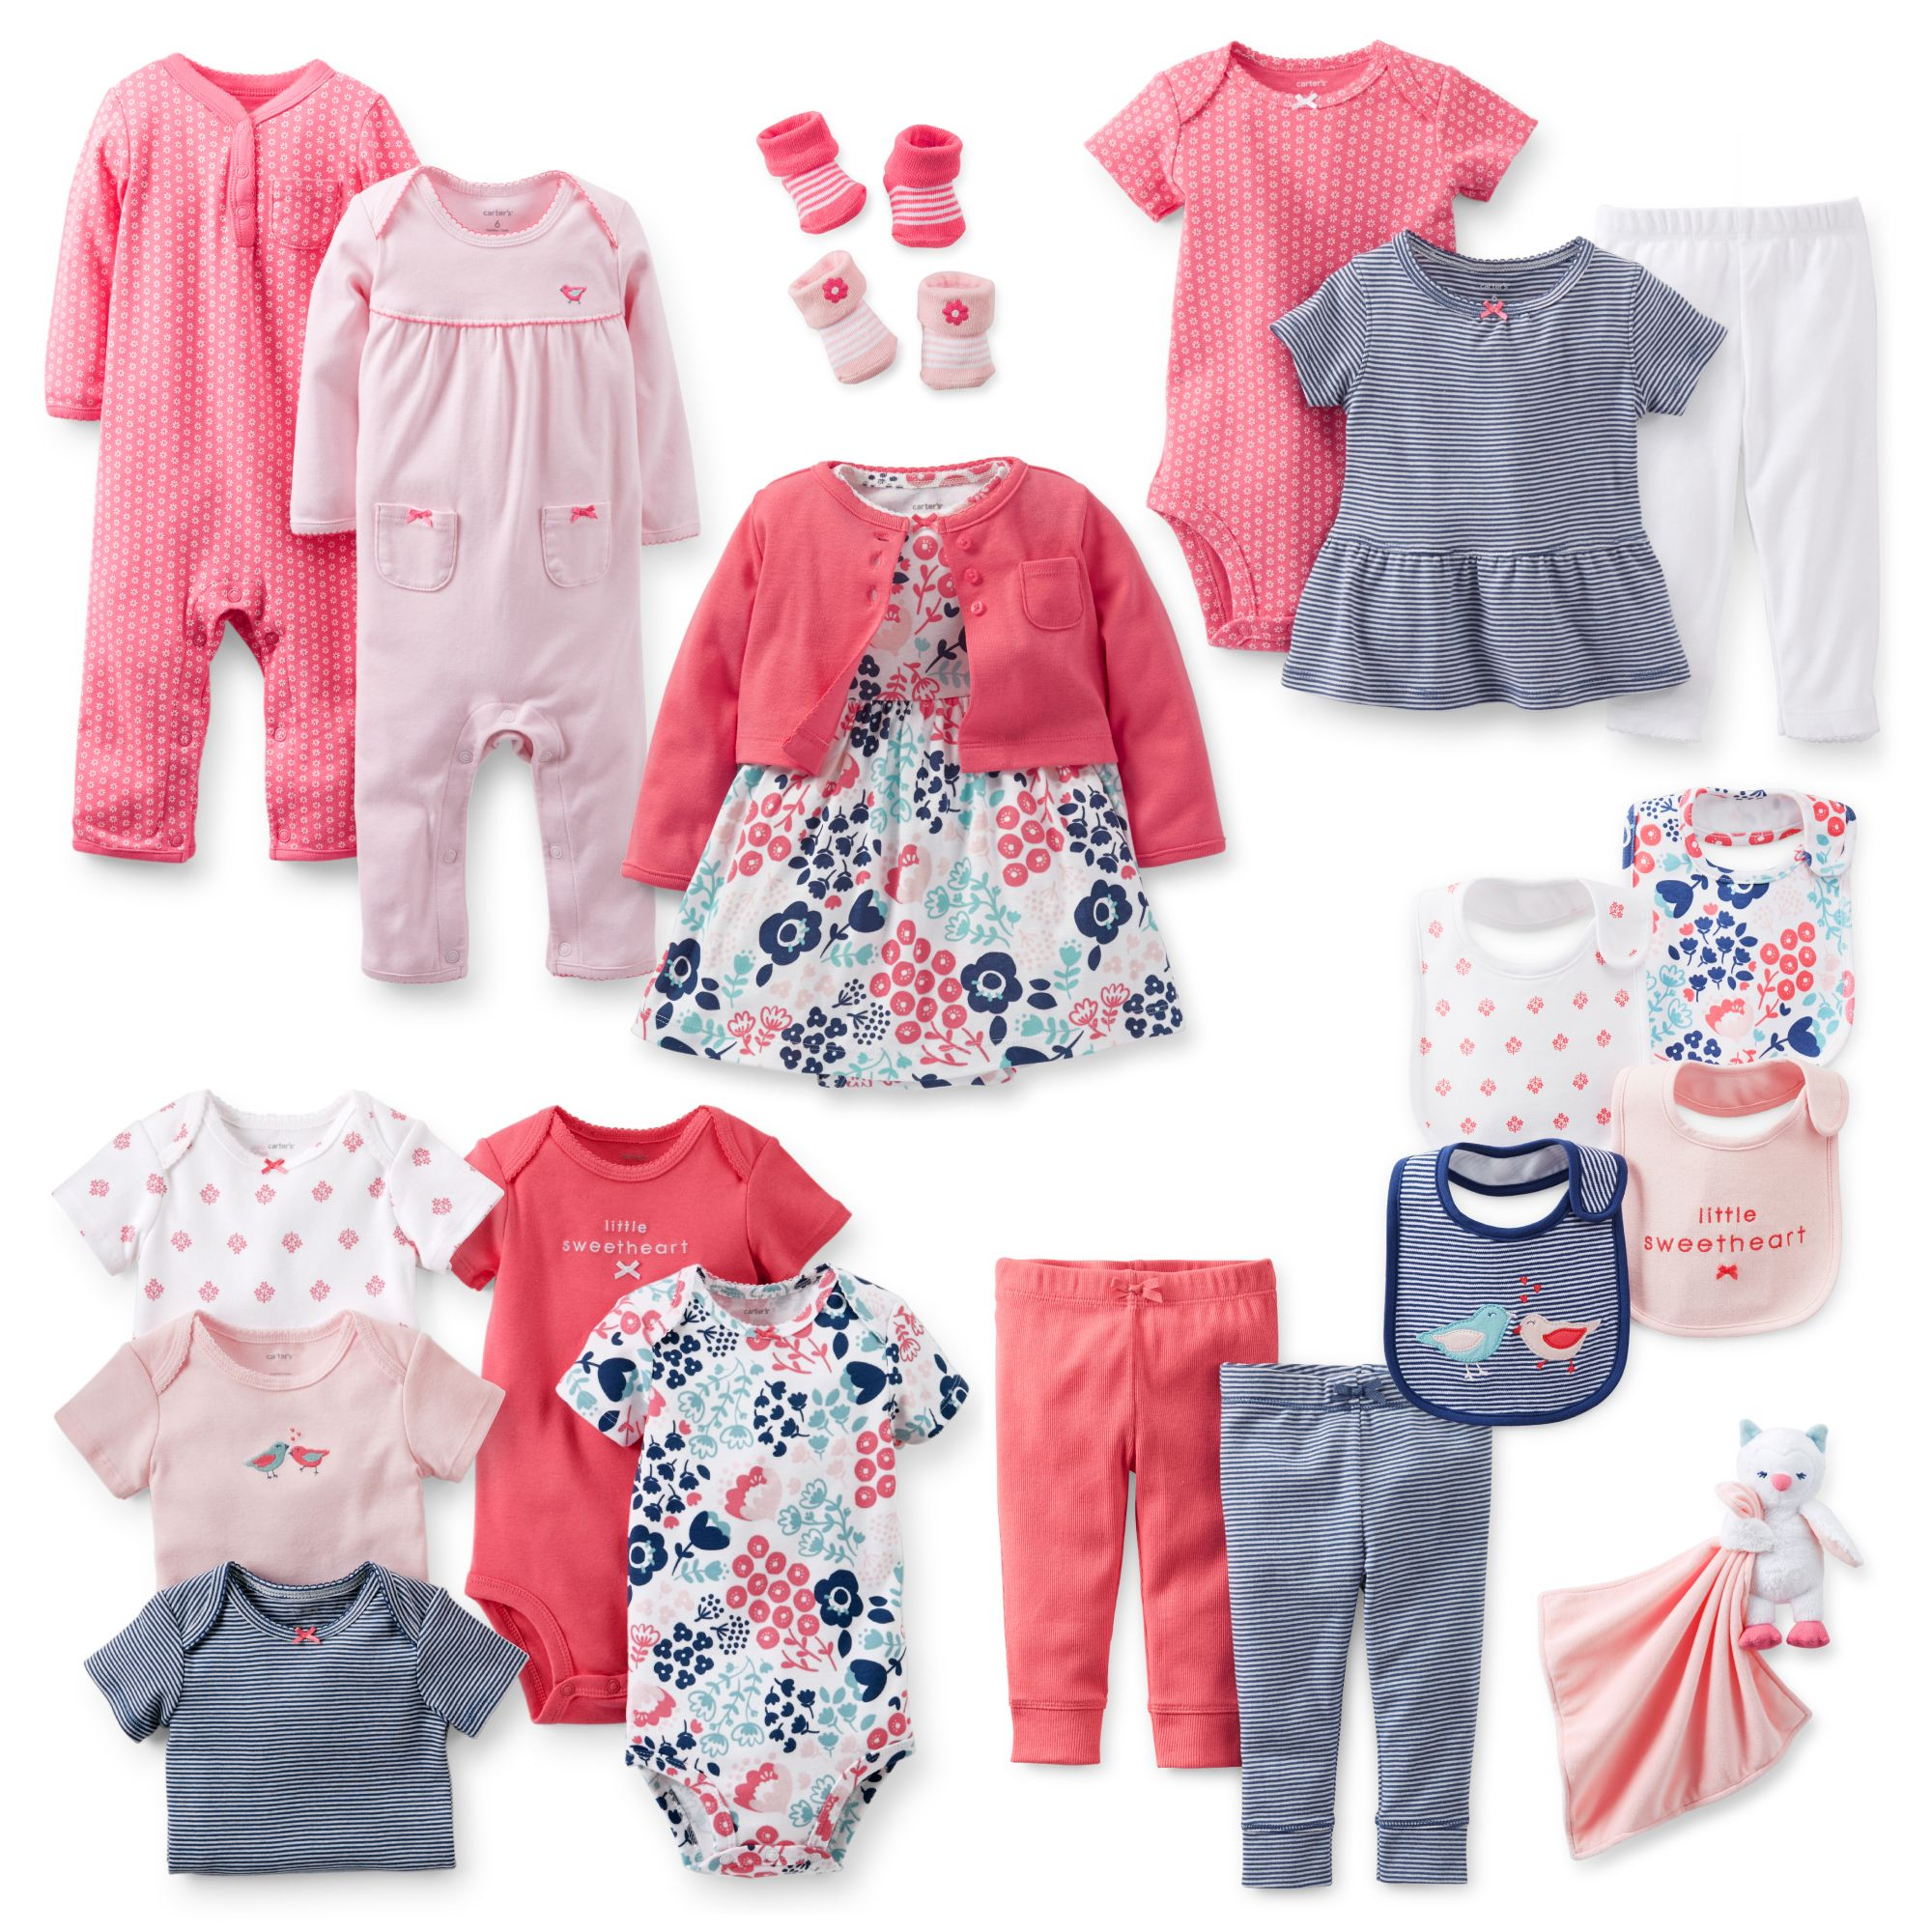 Precious Prints 8-Piece Gift Set  Baby girl outfits newborn